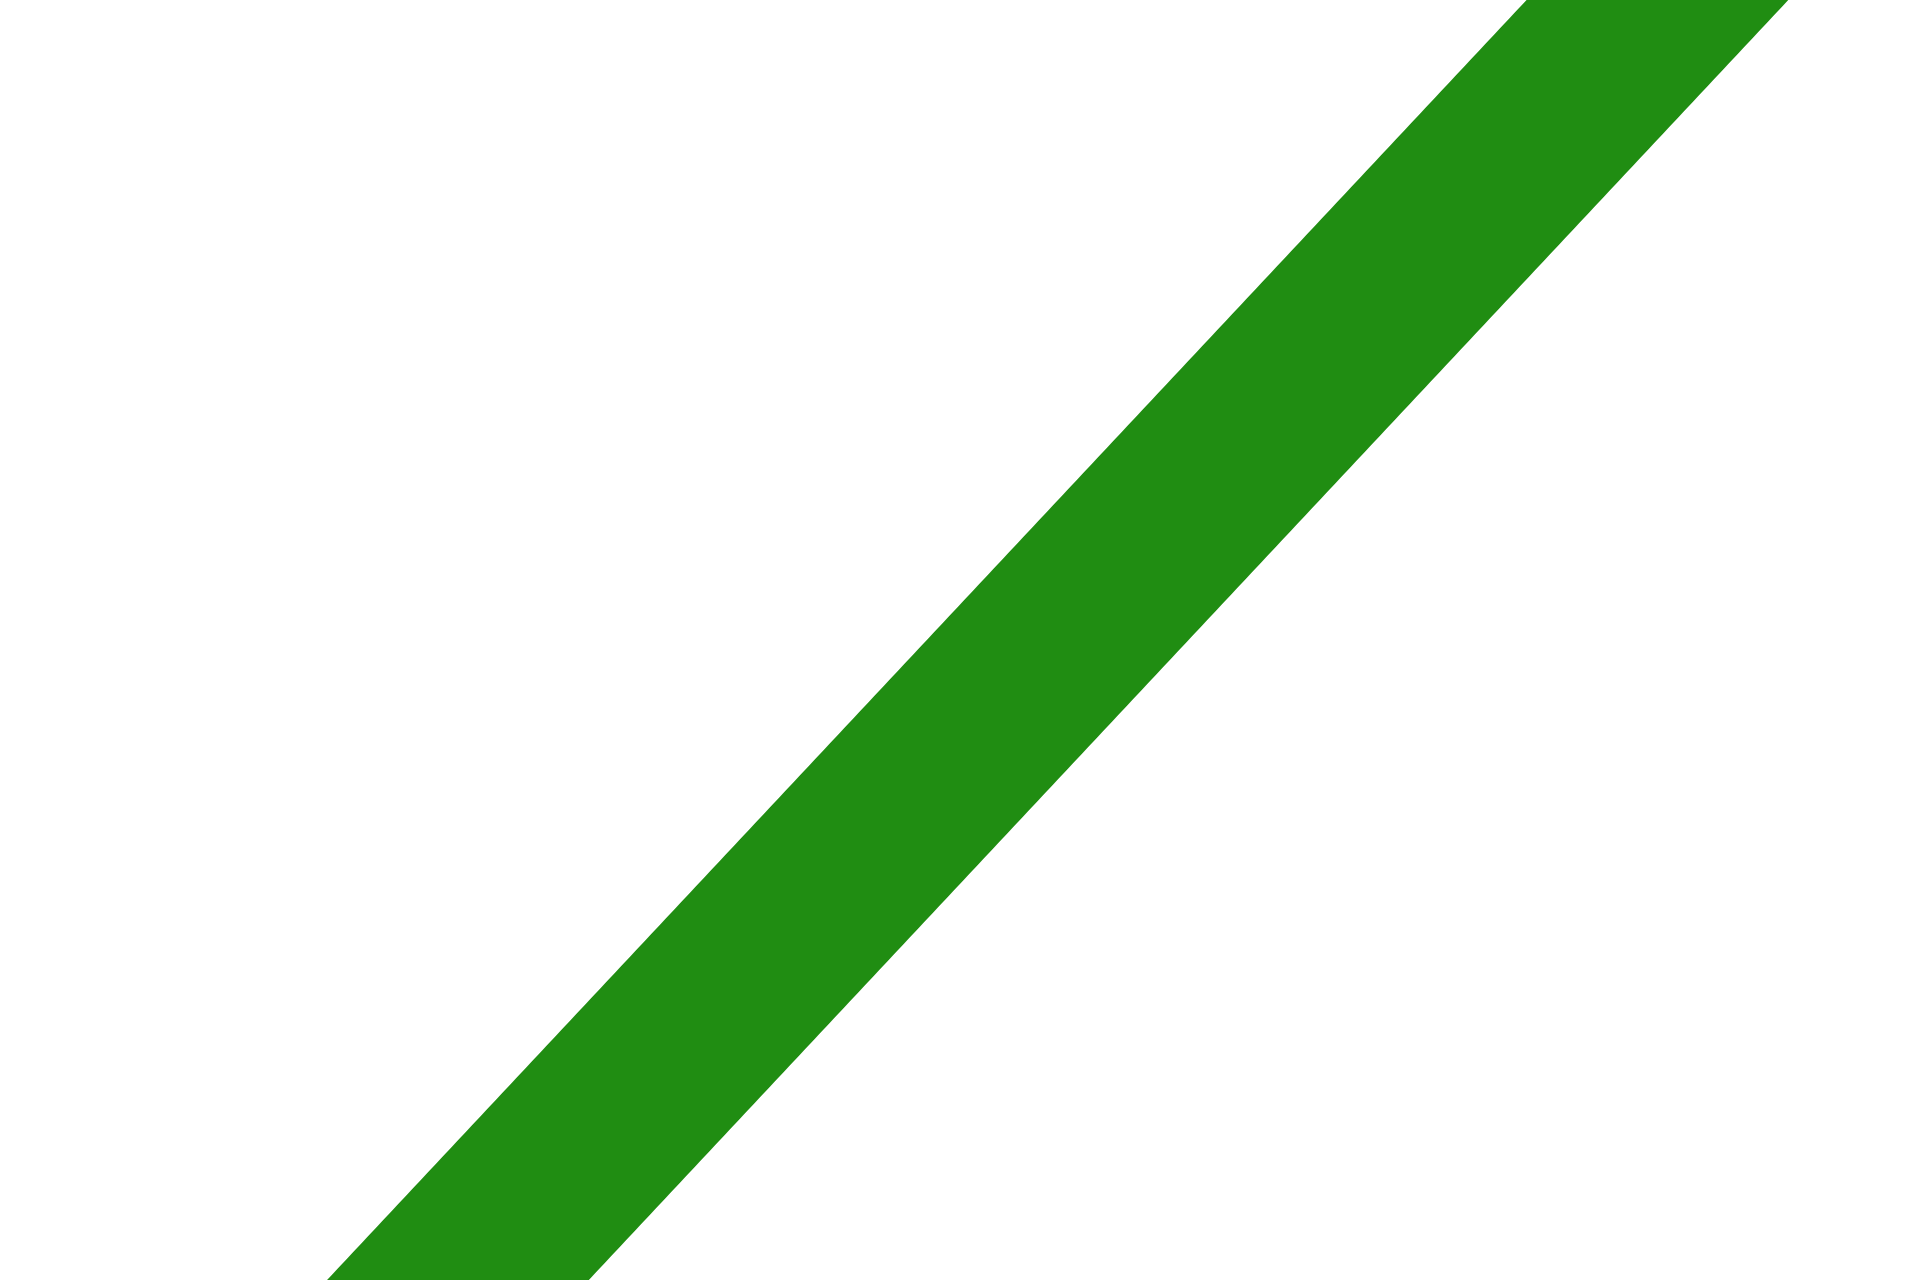 Dark Green Strip